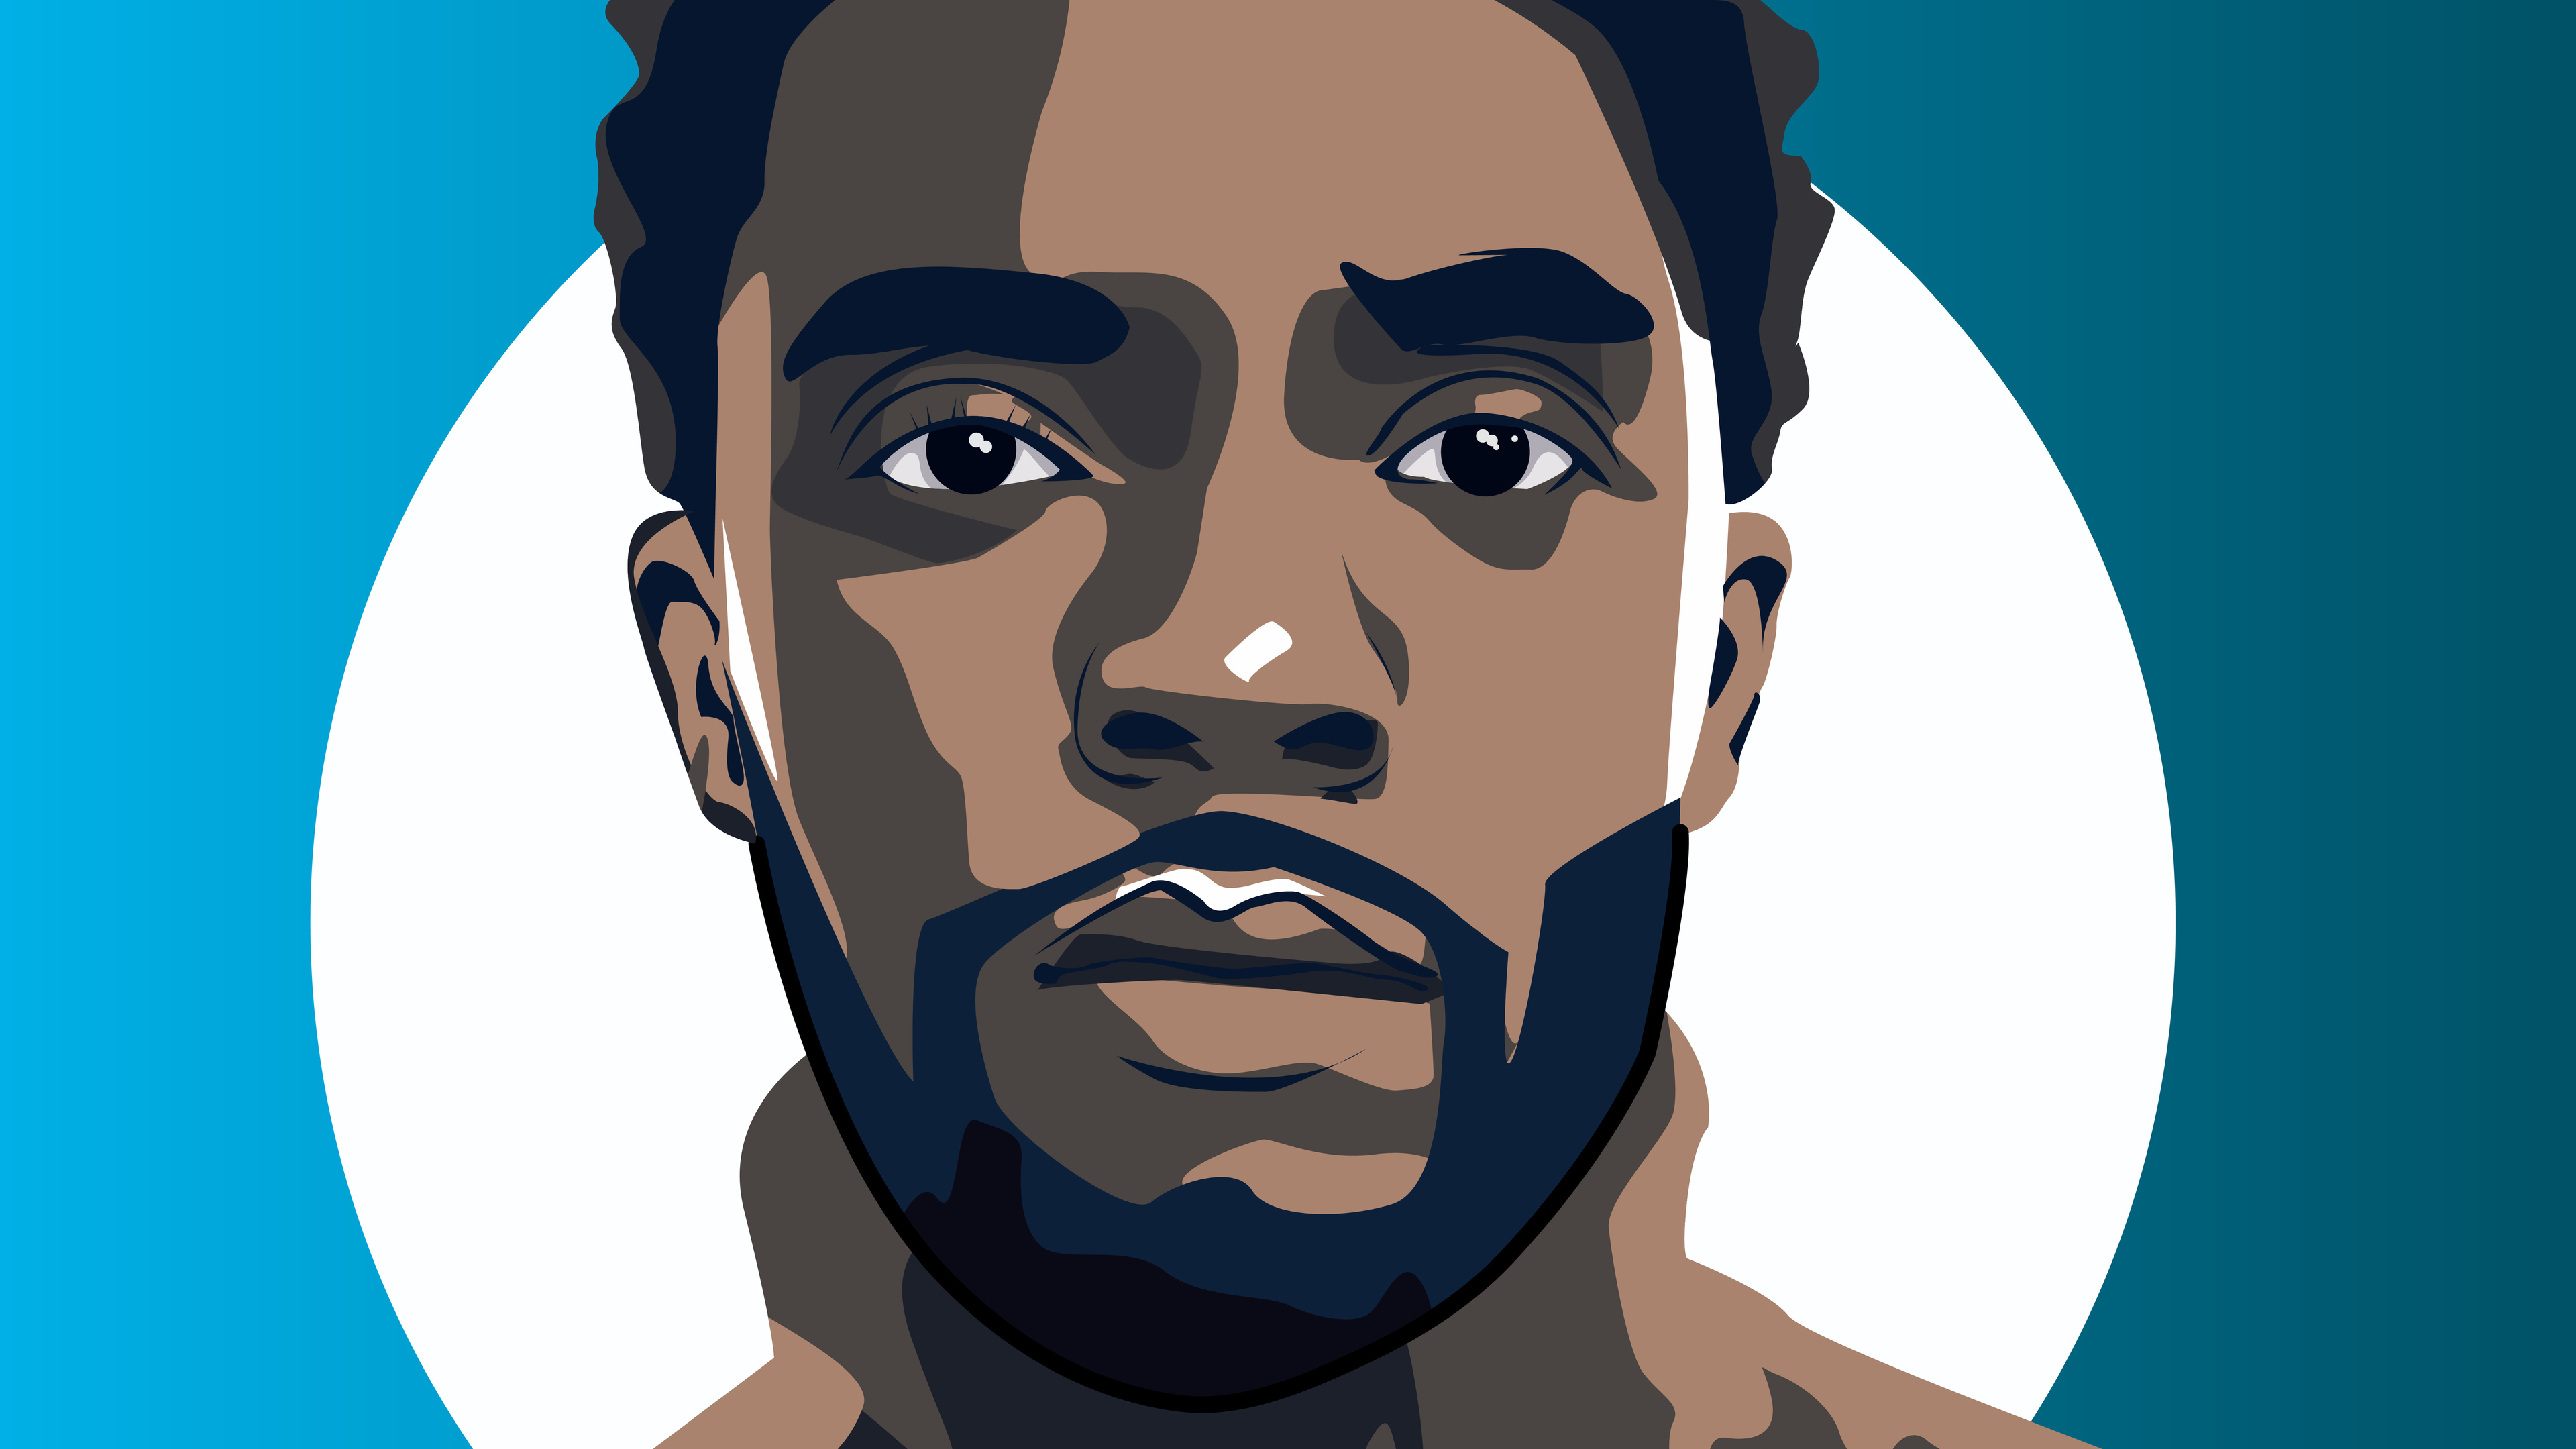 Wallpaper 4k Chadwick Boseman Illustration 4k 4k Wallpapers 5k Wallpapers 8k Wallpapers Artist Wallpapers Artwork Wallpapers Black Panther Wallpapers Chadwick Boseman Wallpapers Digital Art Wallpapers Illustration Wallpapers Superheroes Wallpapers